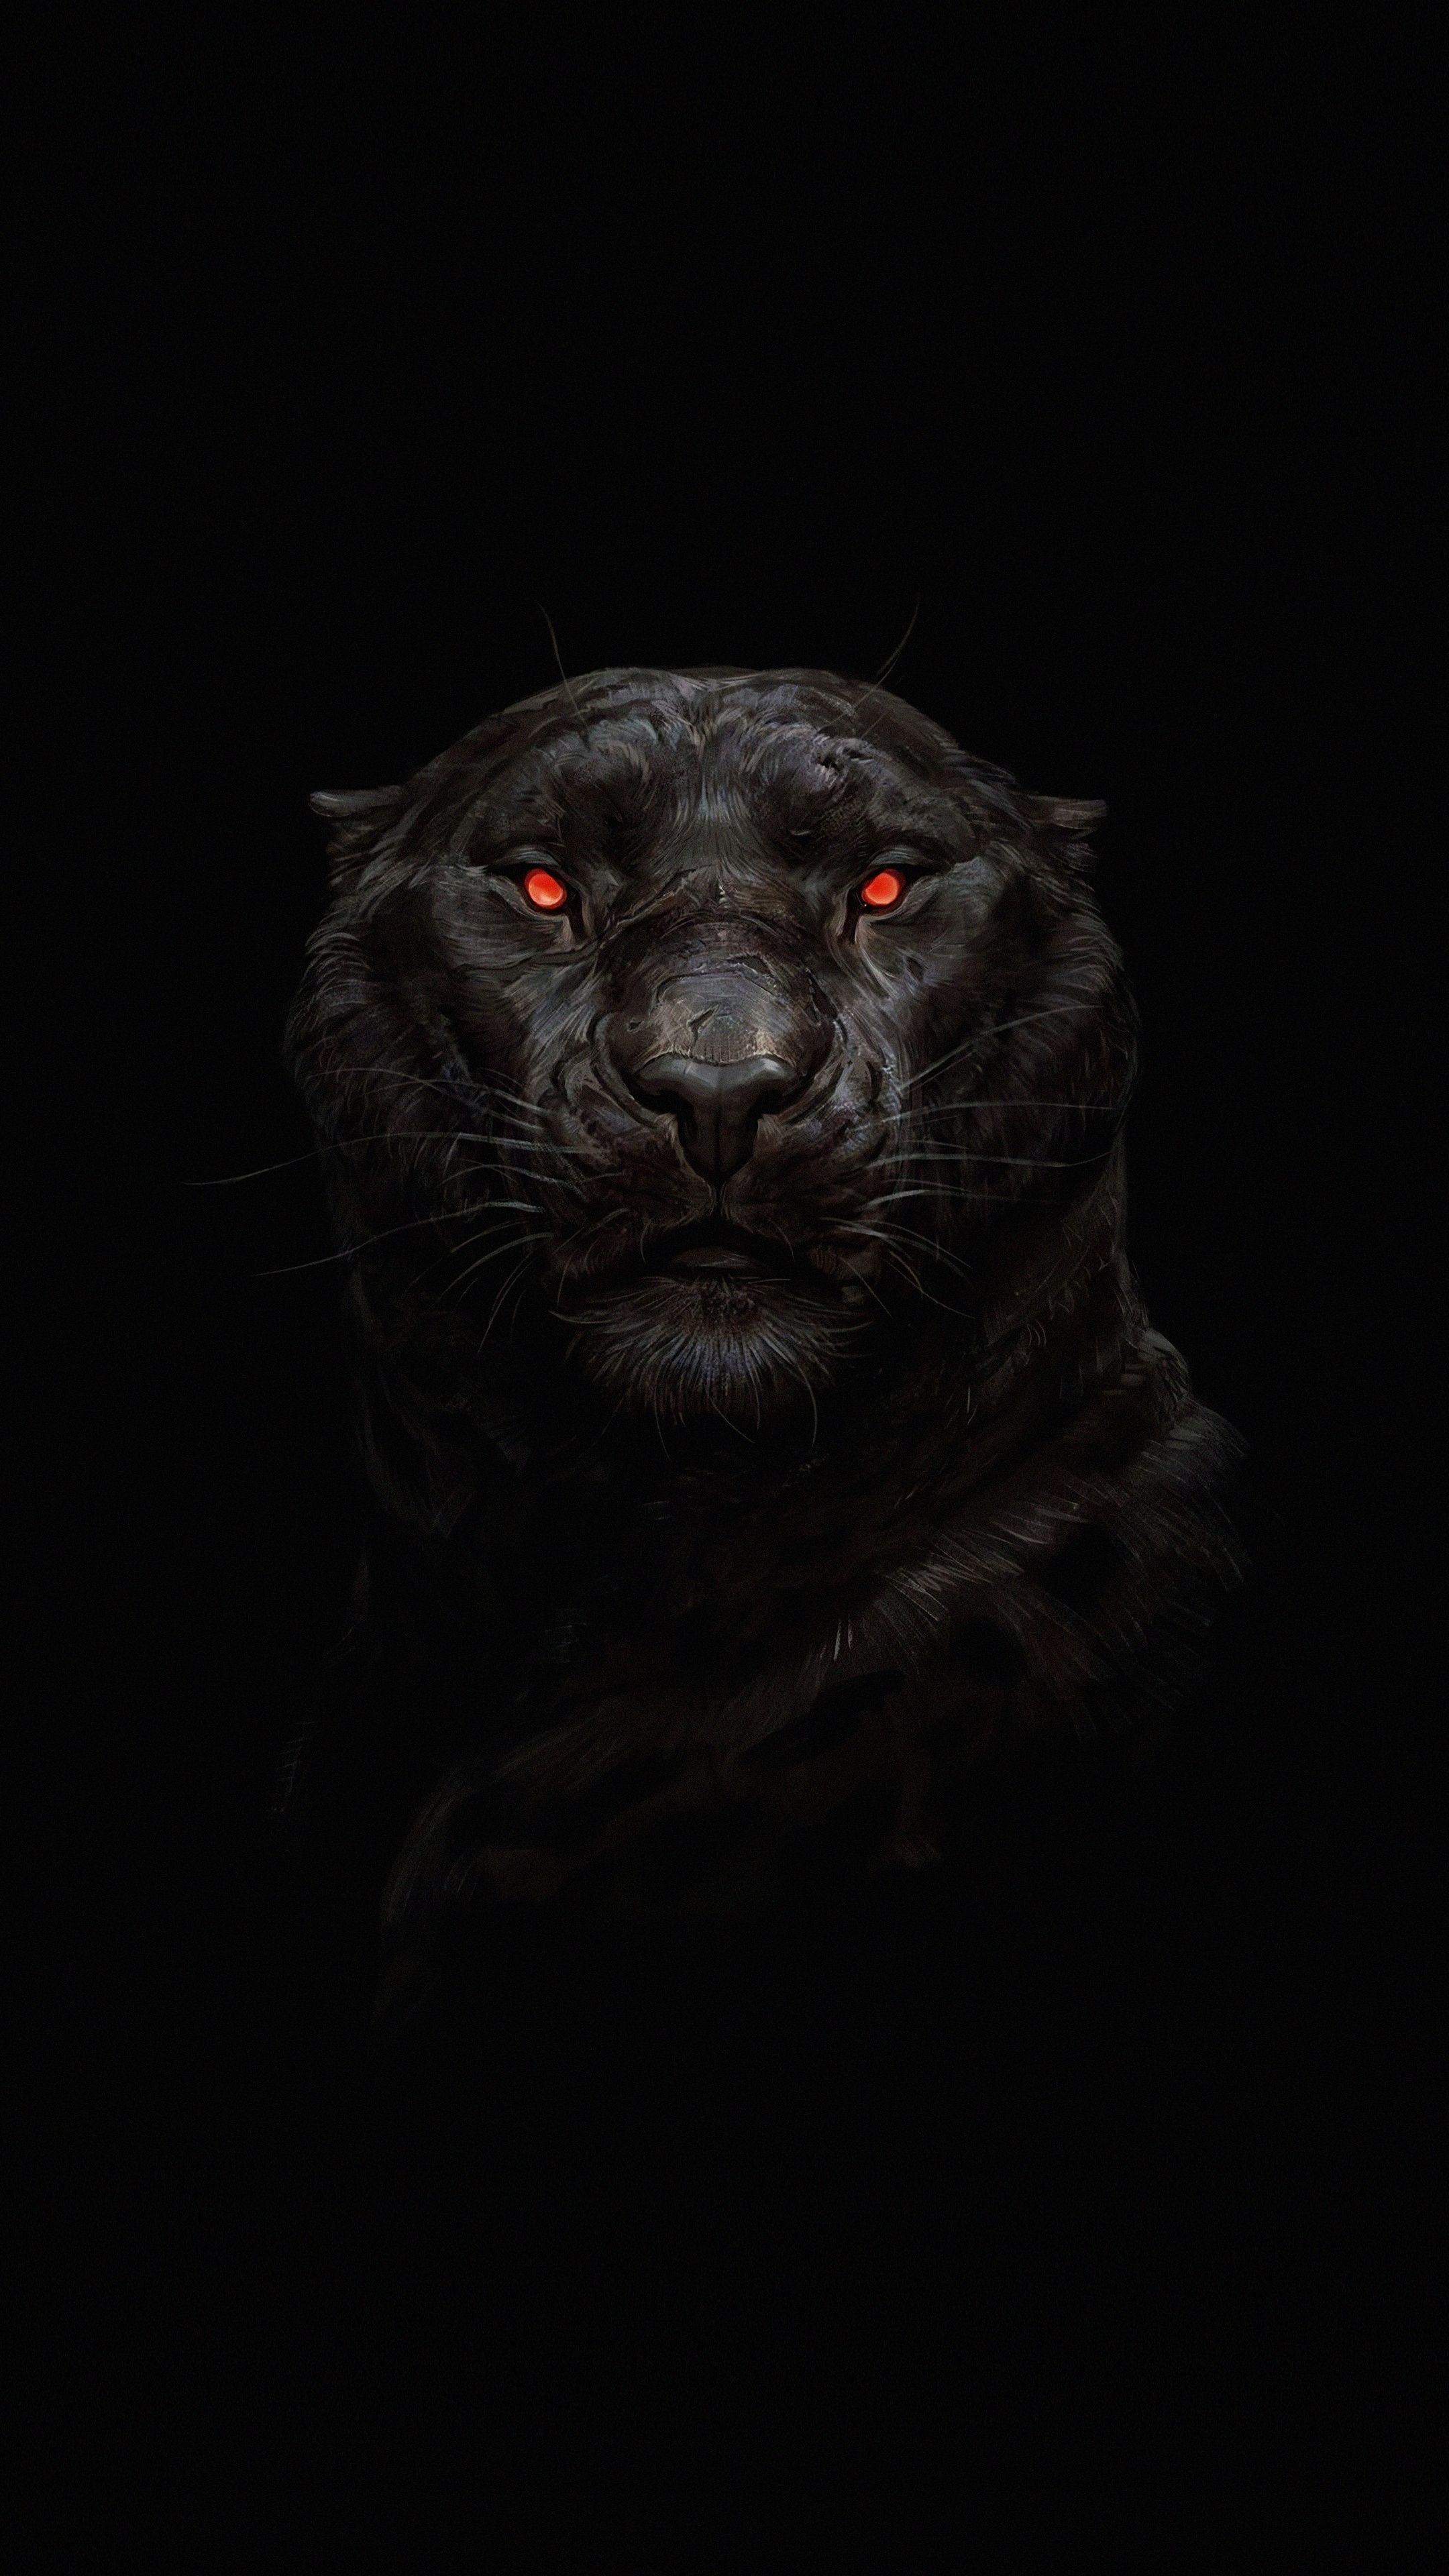 2160x3840 Tiger Glowing Red Eye Minimal Dark Wallpaper Jaguar Animal Black Panther Hd Wallpaper Animal Wallpaper